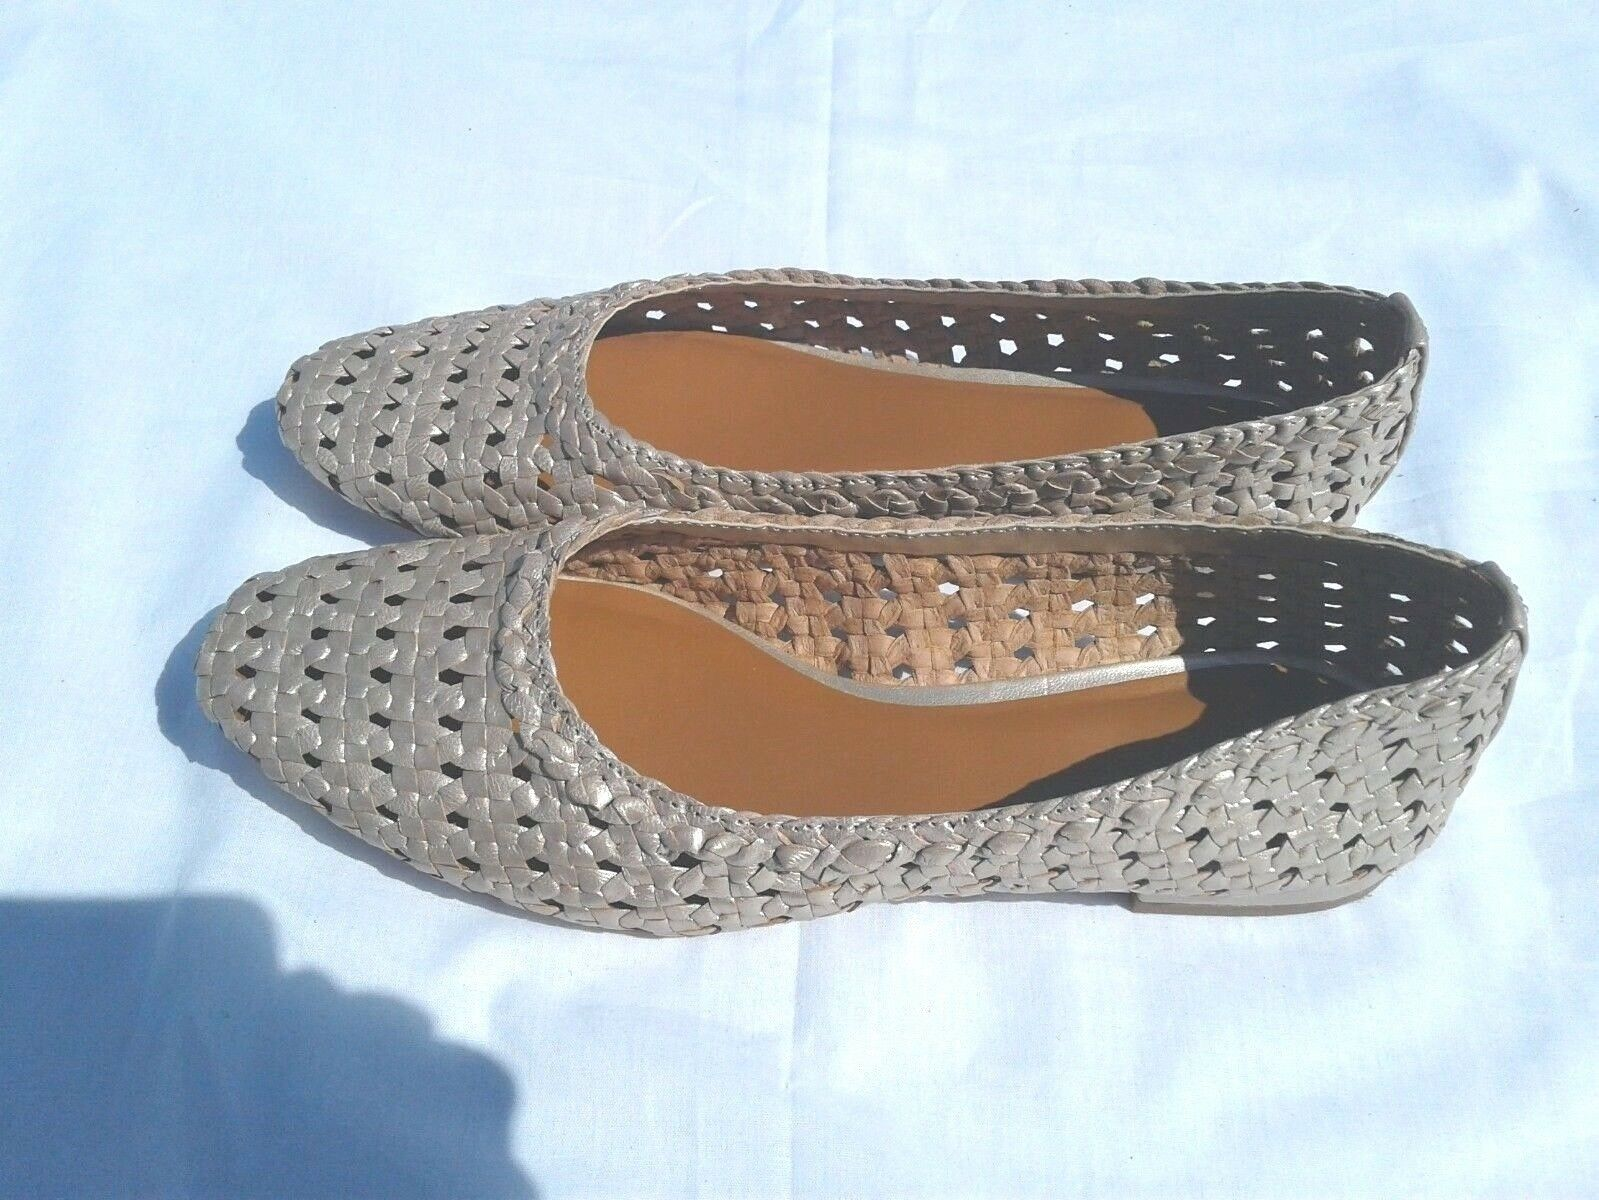 HALSTON Irene Size 7.5M gold Leather Womens Woven Flats NWOB Retail  129